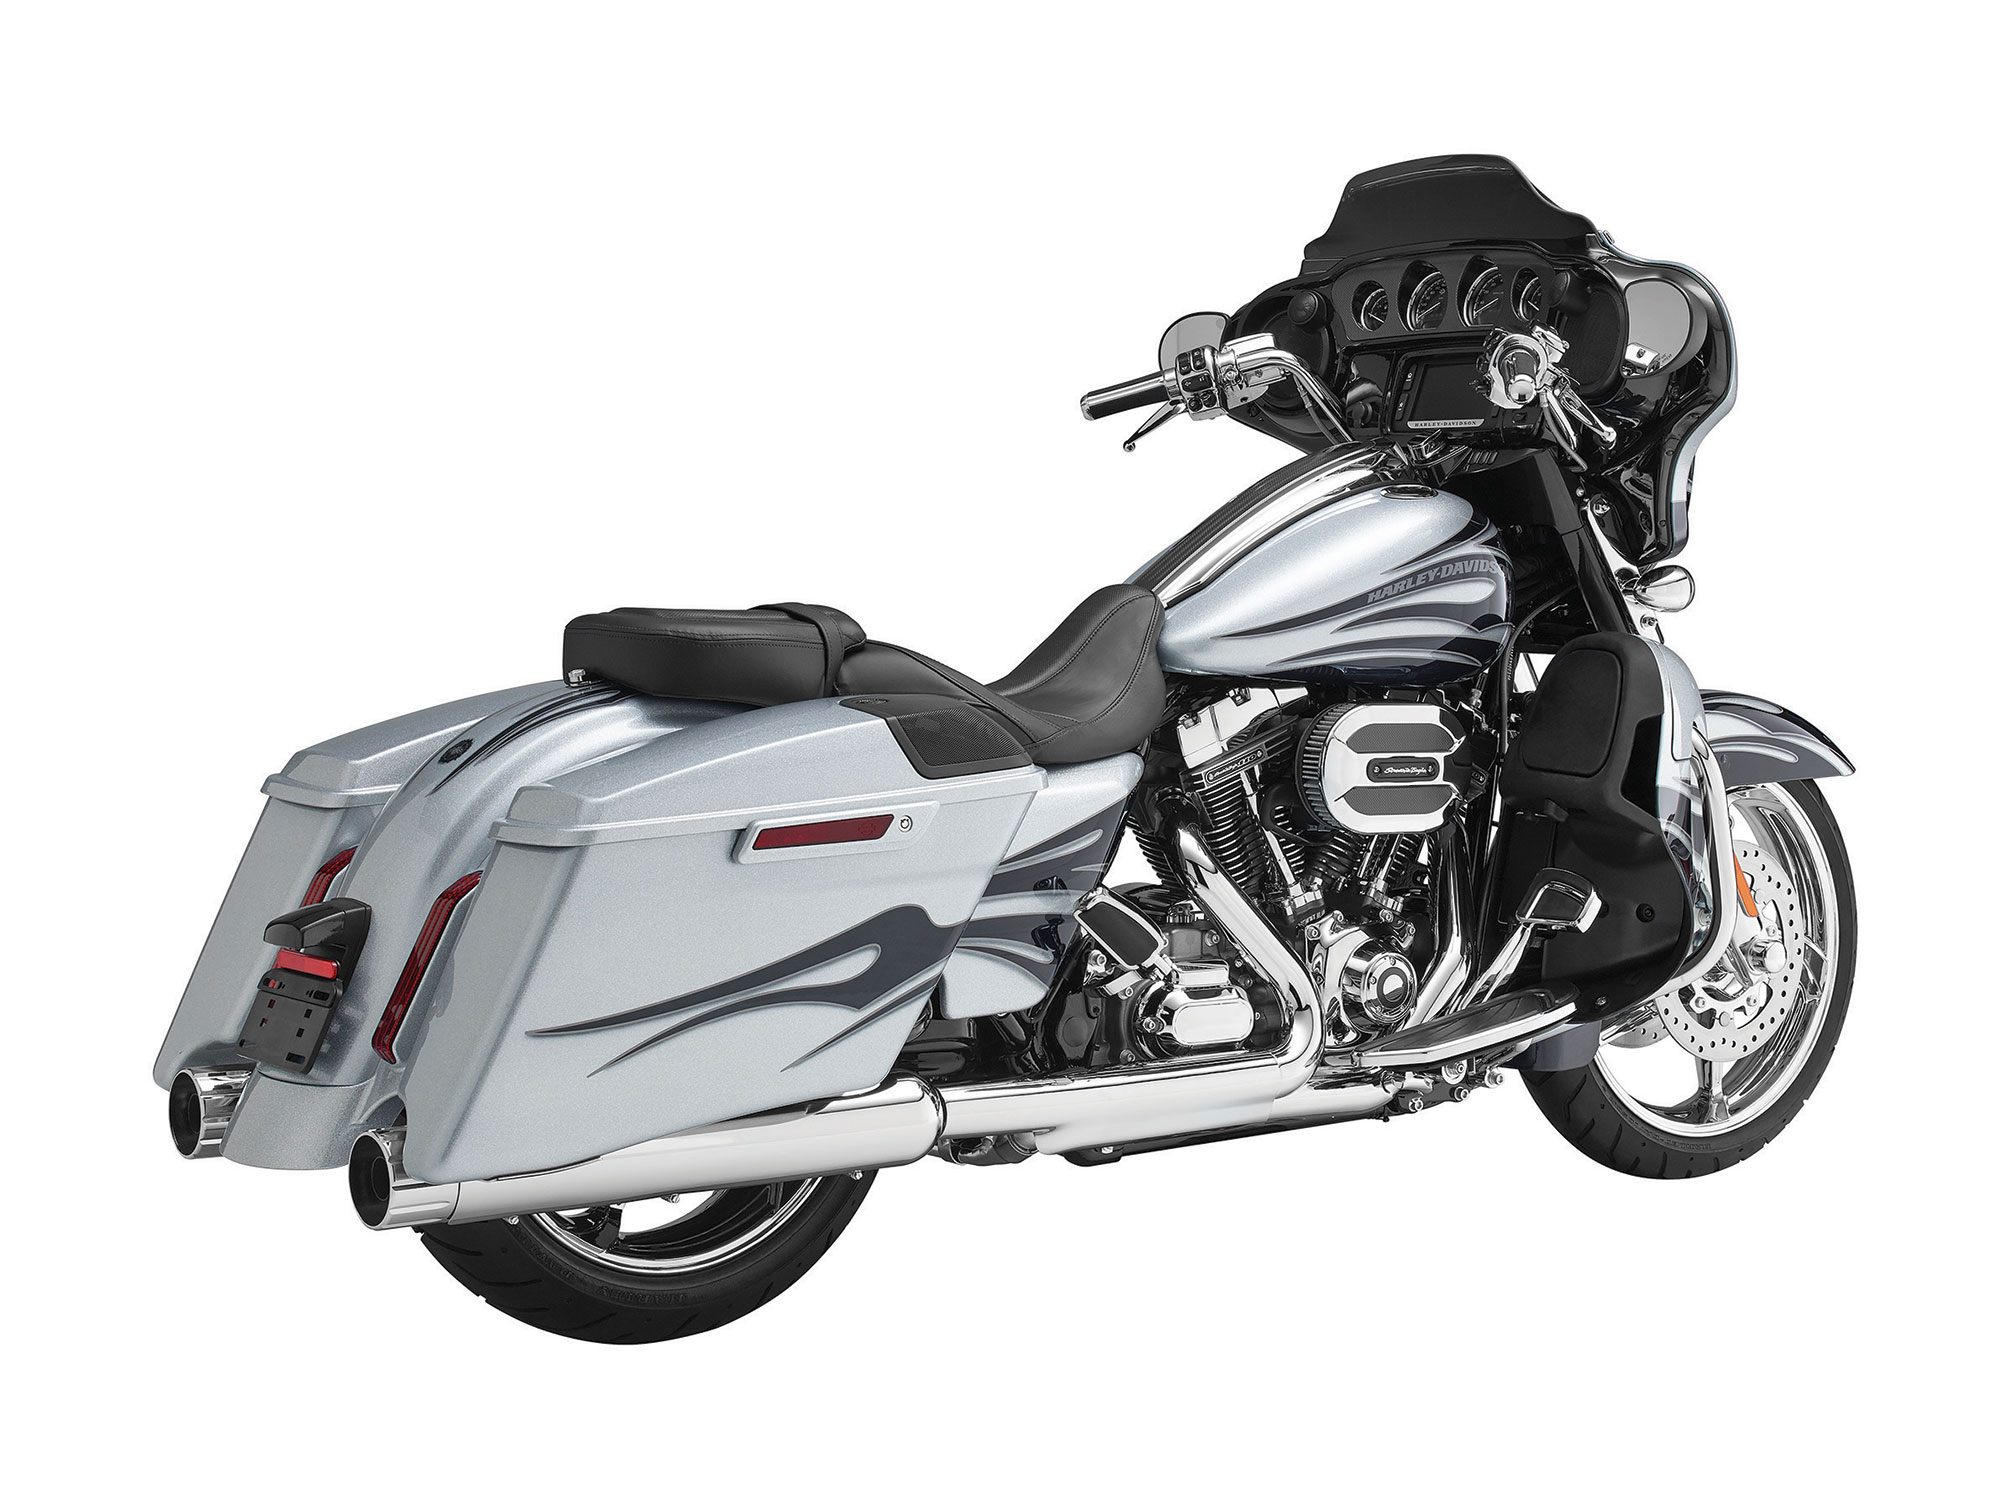 2015 harley davidson flhxse cvo street glide review. Black Bedroom Furniture Sets. Home Design Ideas